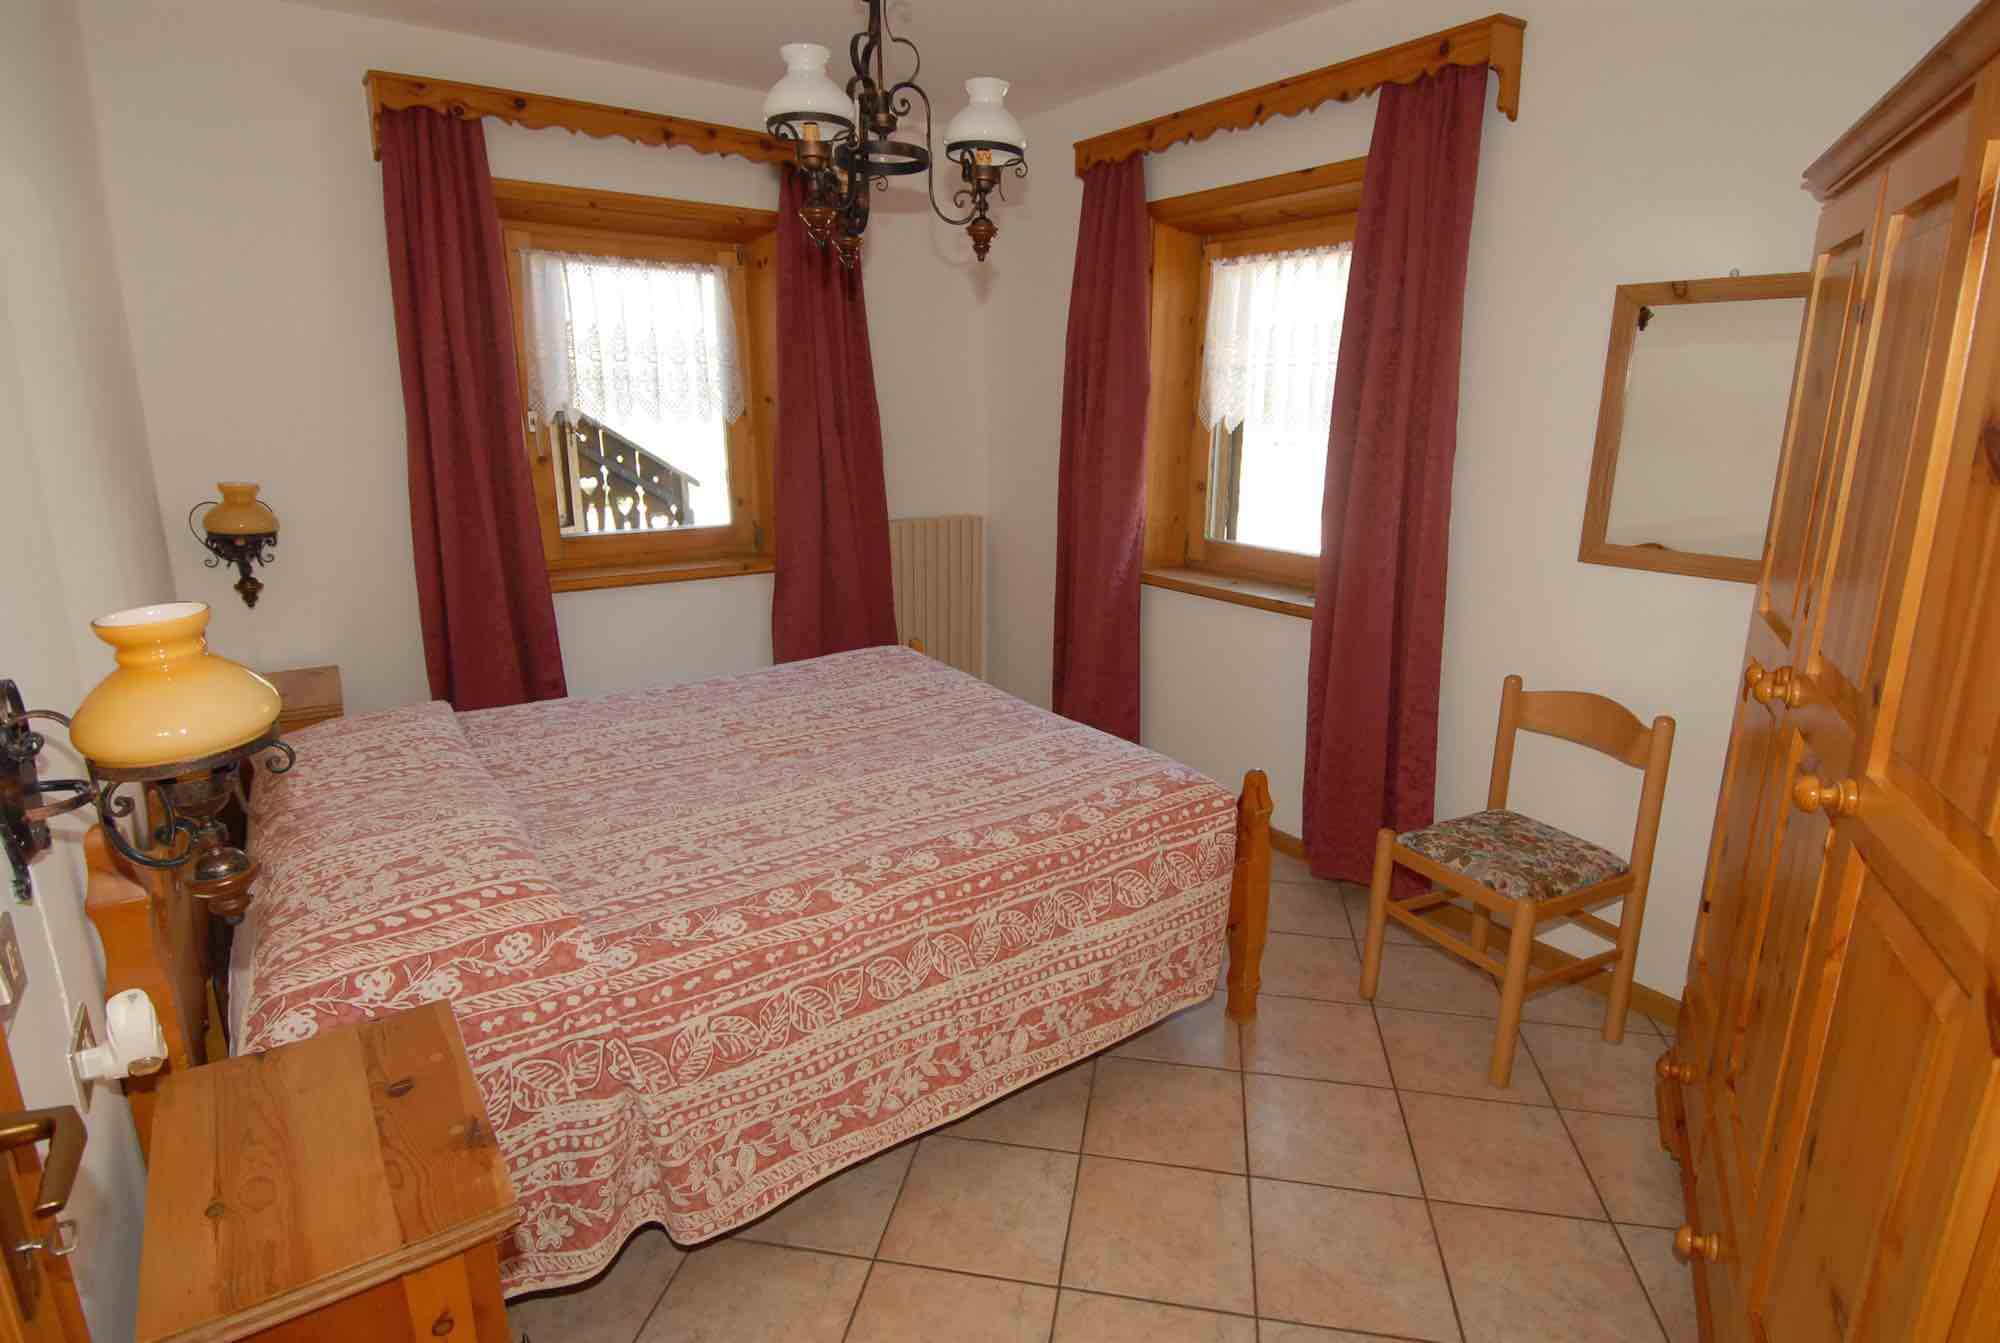 Baita Guana - Via Borch N.800, Livigno 23041 - Apartment - Piano Terra X6 4